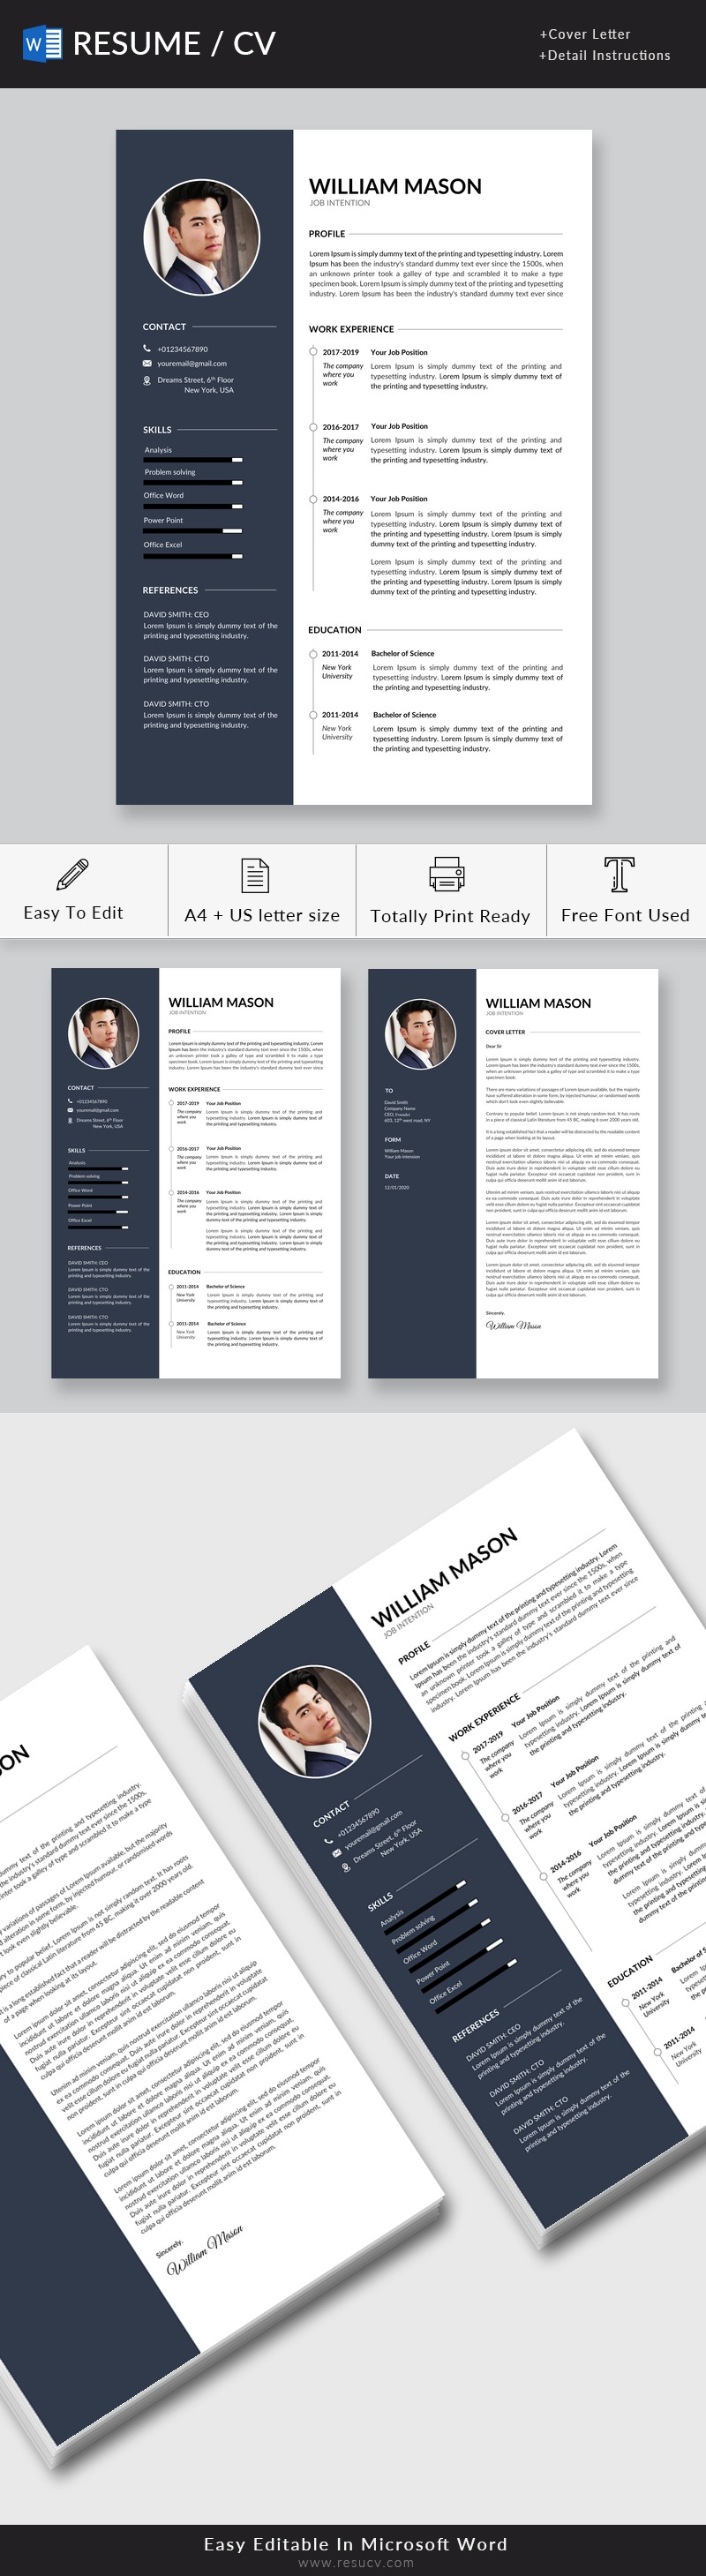 Professional Resume Template for Word, 2 Page Resume Template